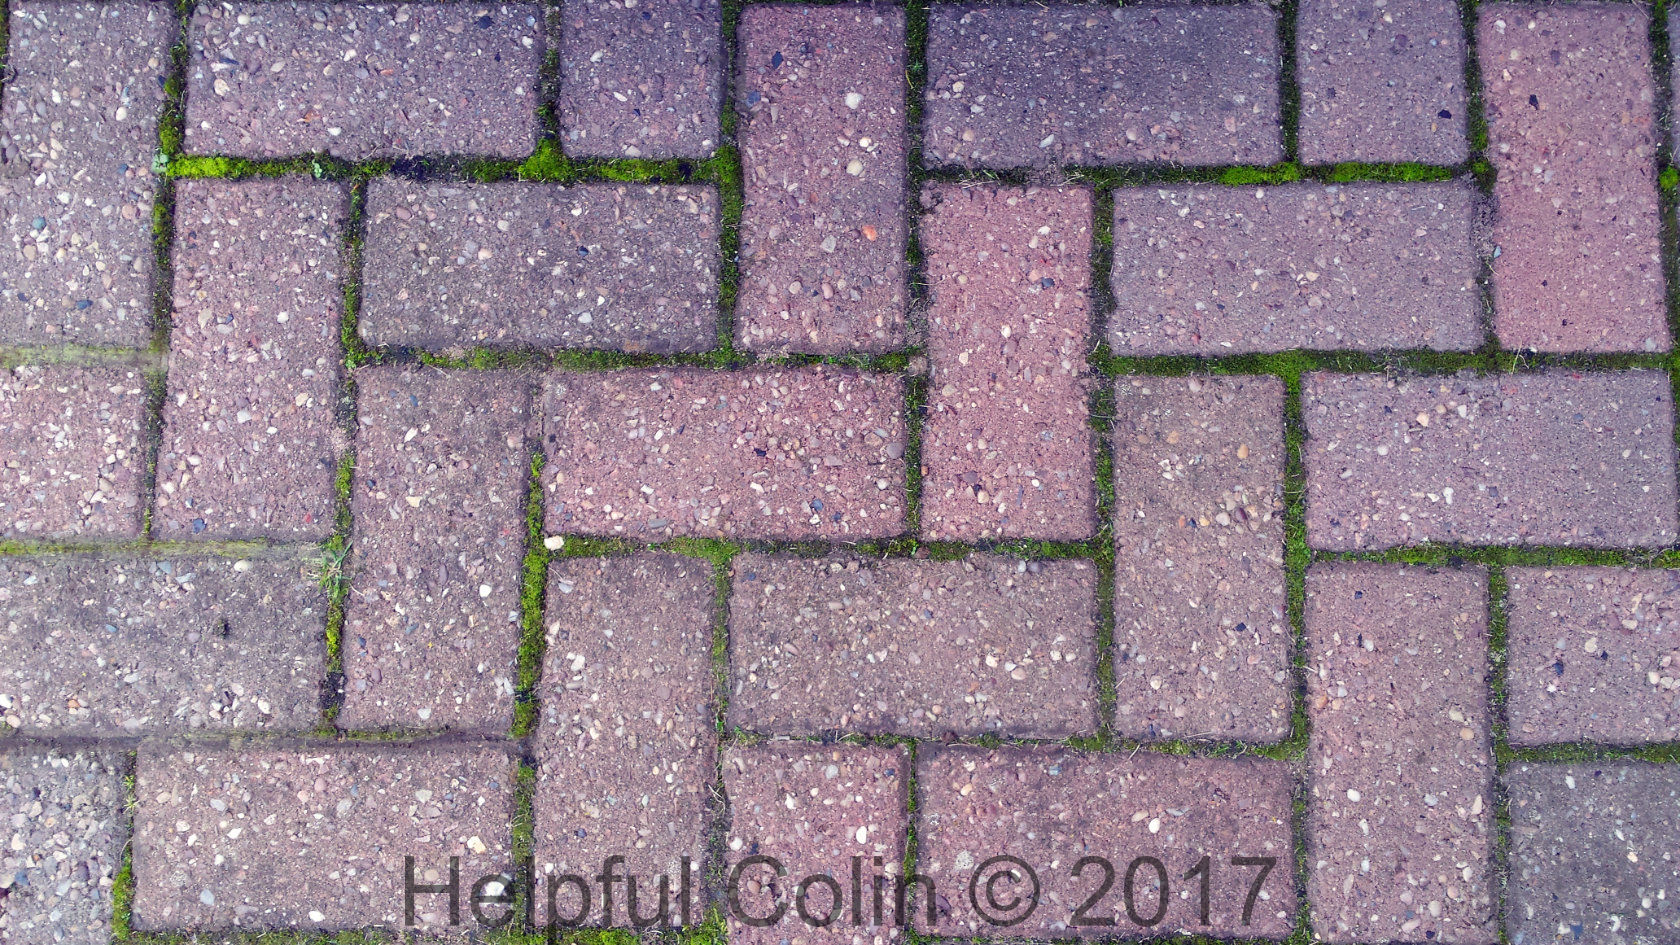 Removing Block Paving Moss From My Driveway